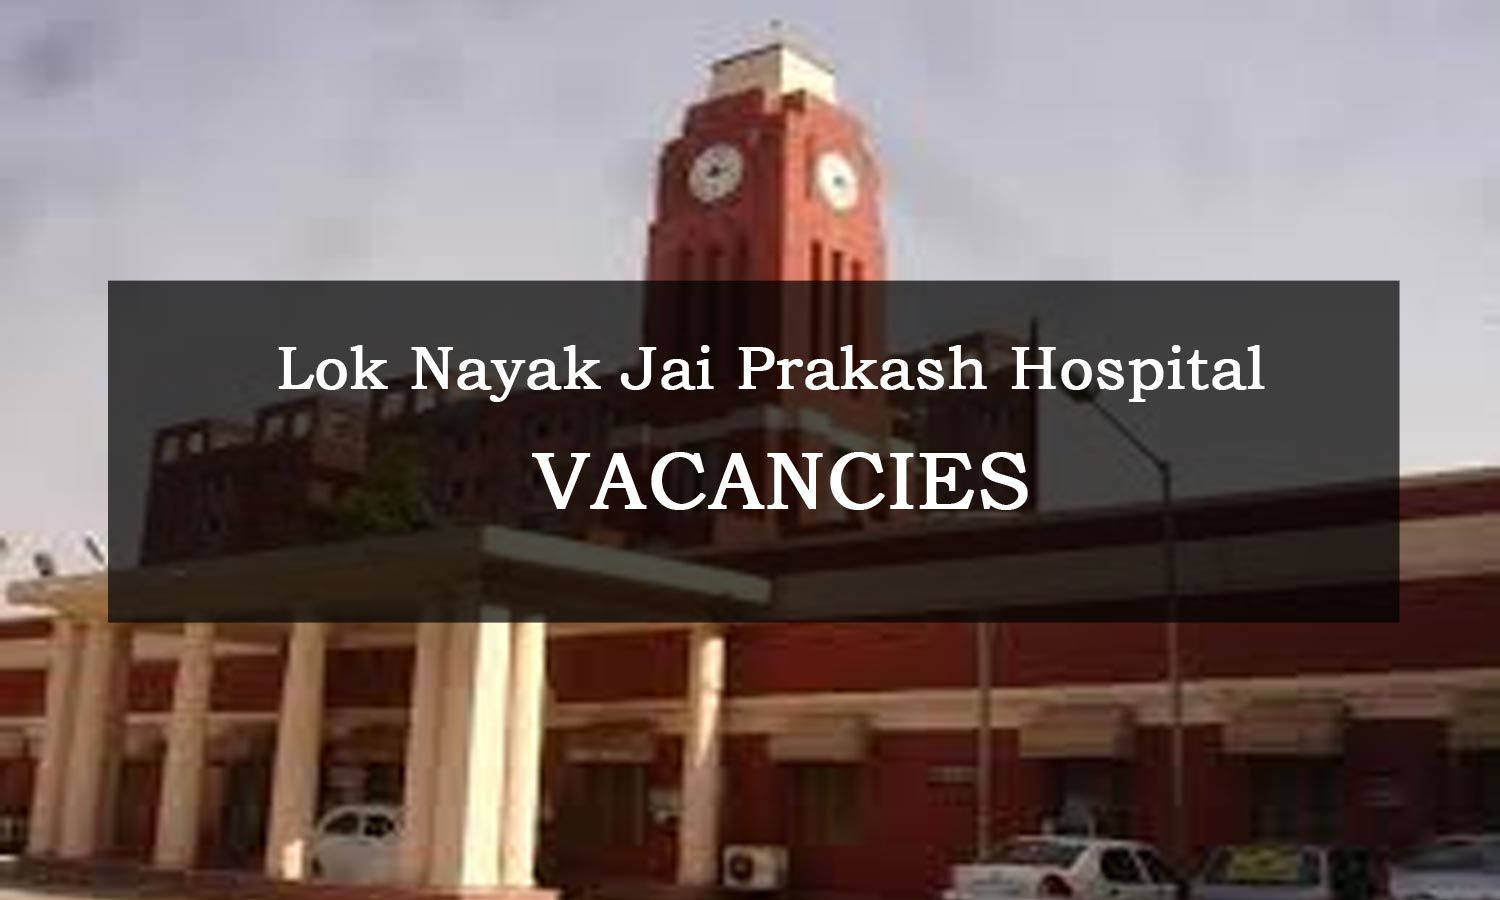 Walk-In-Interview: COVID ONLY LNJP Hospital Delhi Releases 39 Vacancies  For Senior Resident Post